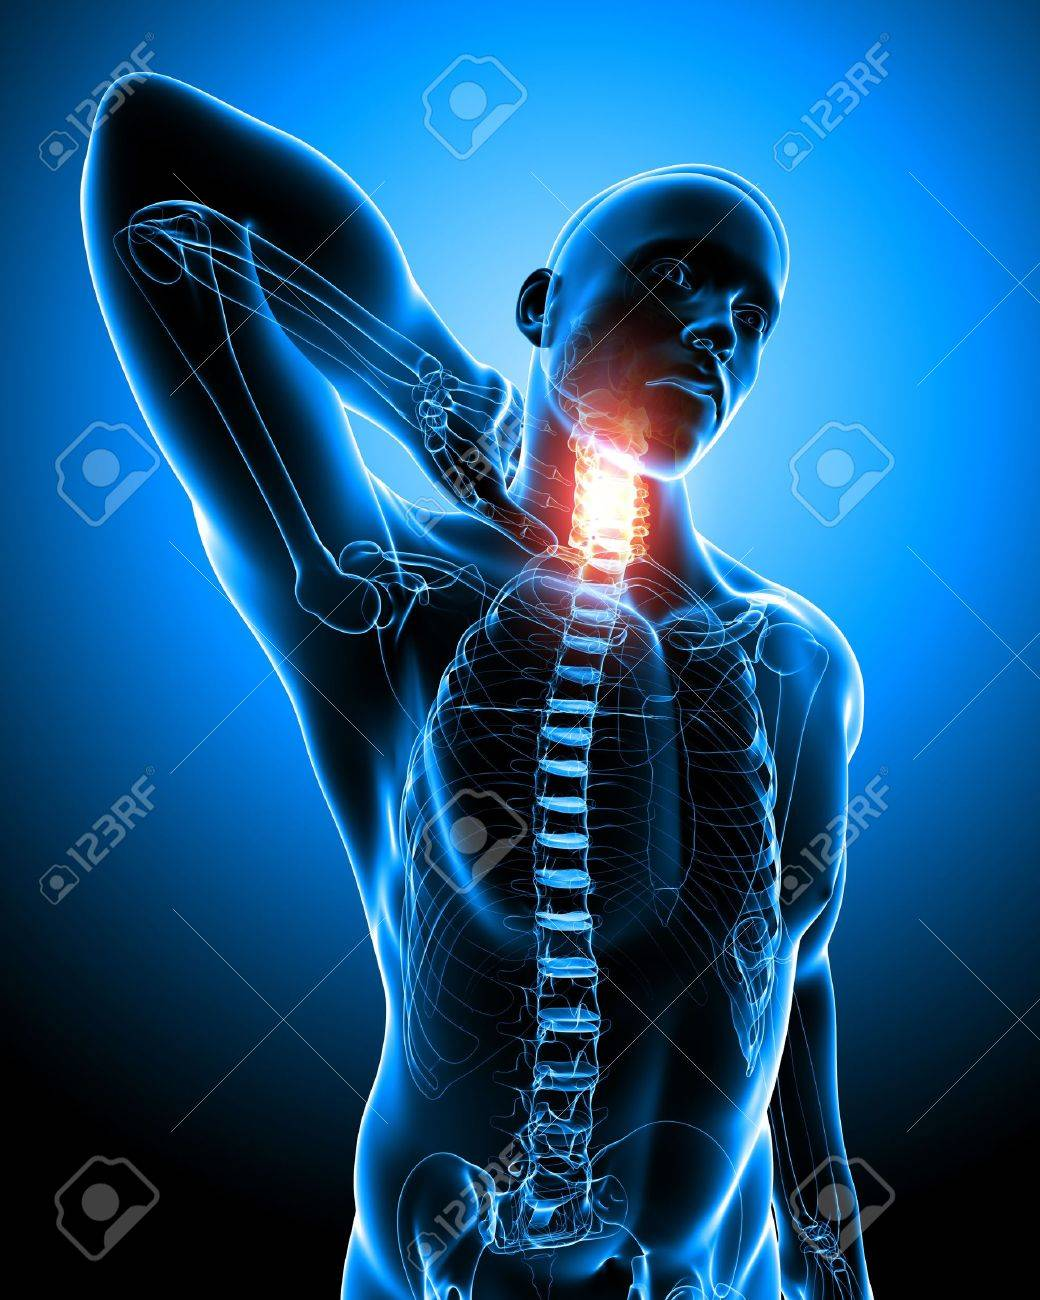 Anatomy Of Neck Pain In Blue Stock Photo, Picture And Royalty Free ...